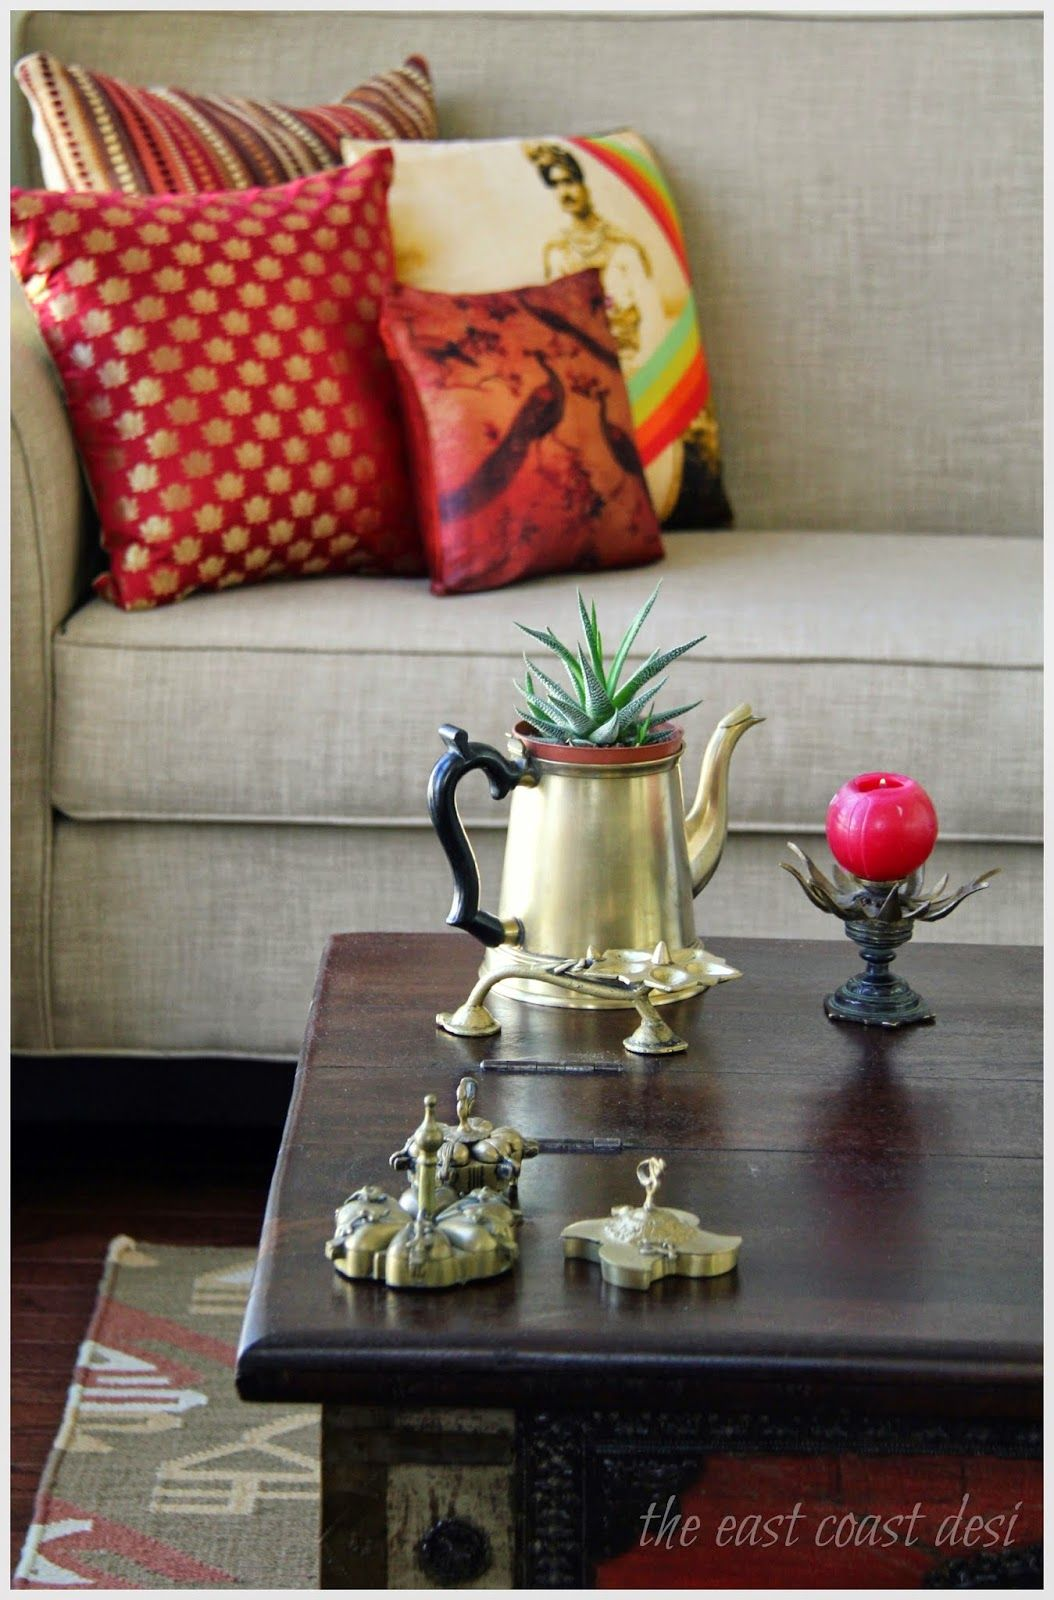 The east coast desi home decor home decor pinterest for Home decor blogs